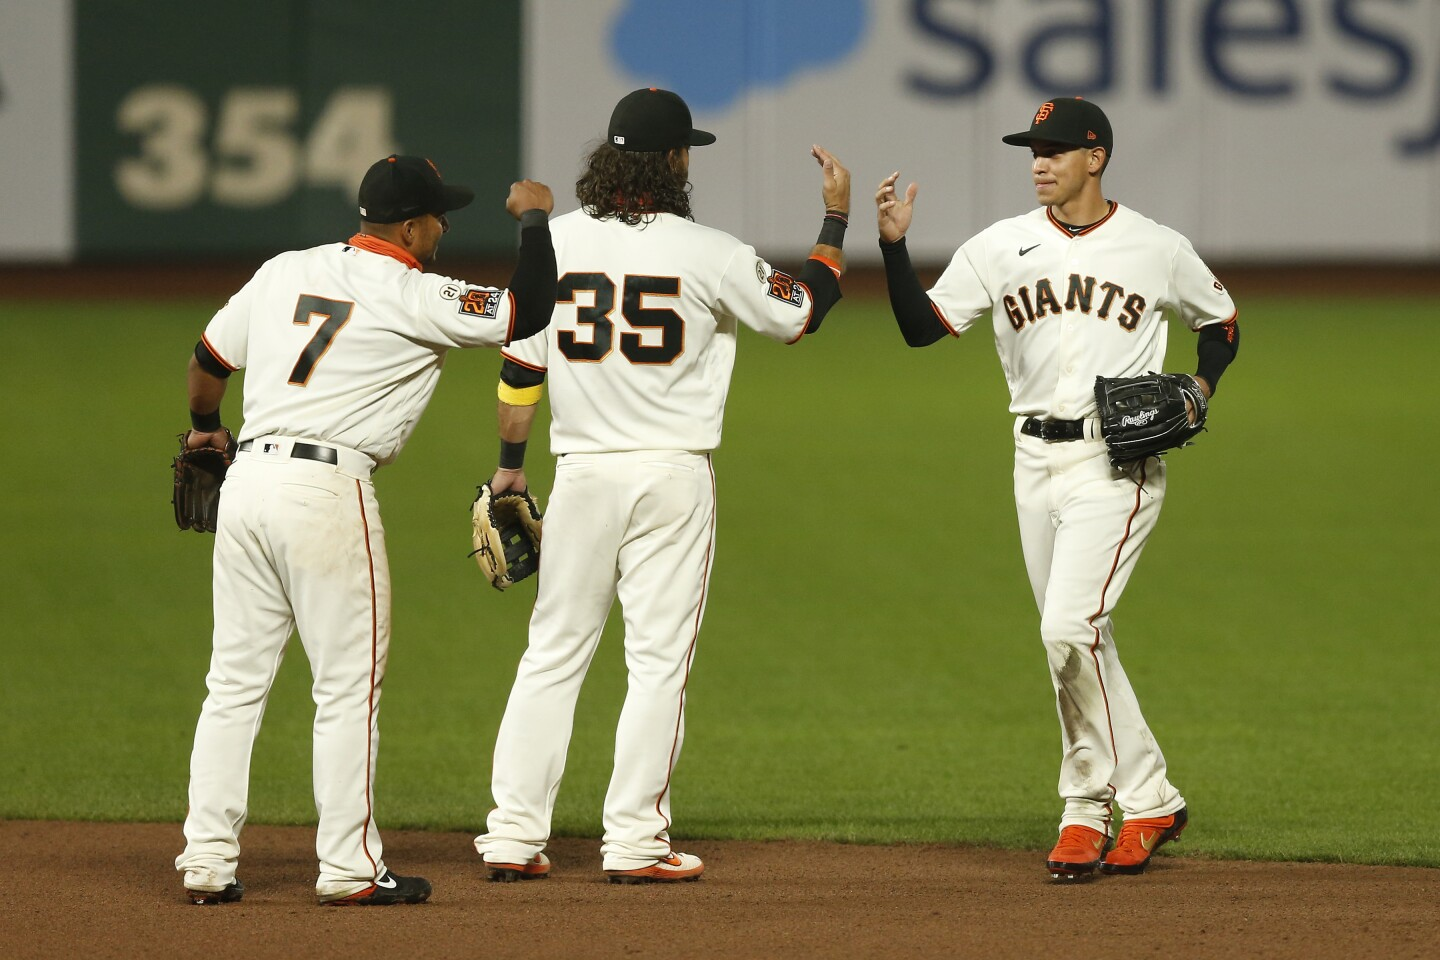 SAN FRANCISCO, CALIFORNIA - SEPTEMBER 09: Donovan Solano #7, Brandon Crawford #35 and Mauricio Dubon #1 of the San Francisco Giants celebrate after a win against the Seattle Mariners at Oracle Park on September 09, 2020 in San Francisco, California. (Photo by Lachlan Cunningham/Getty Images)